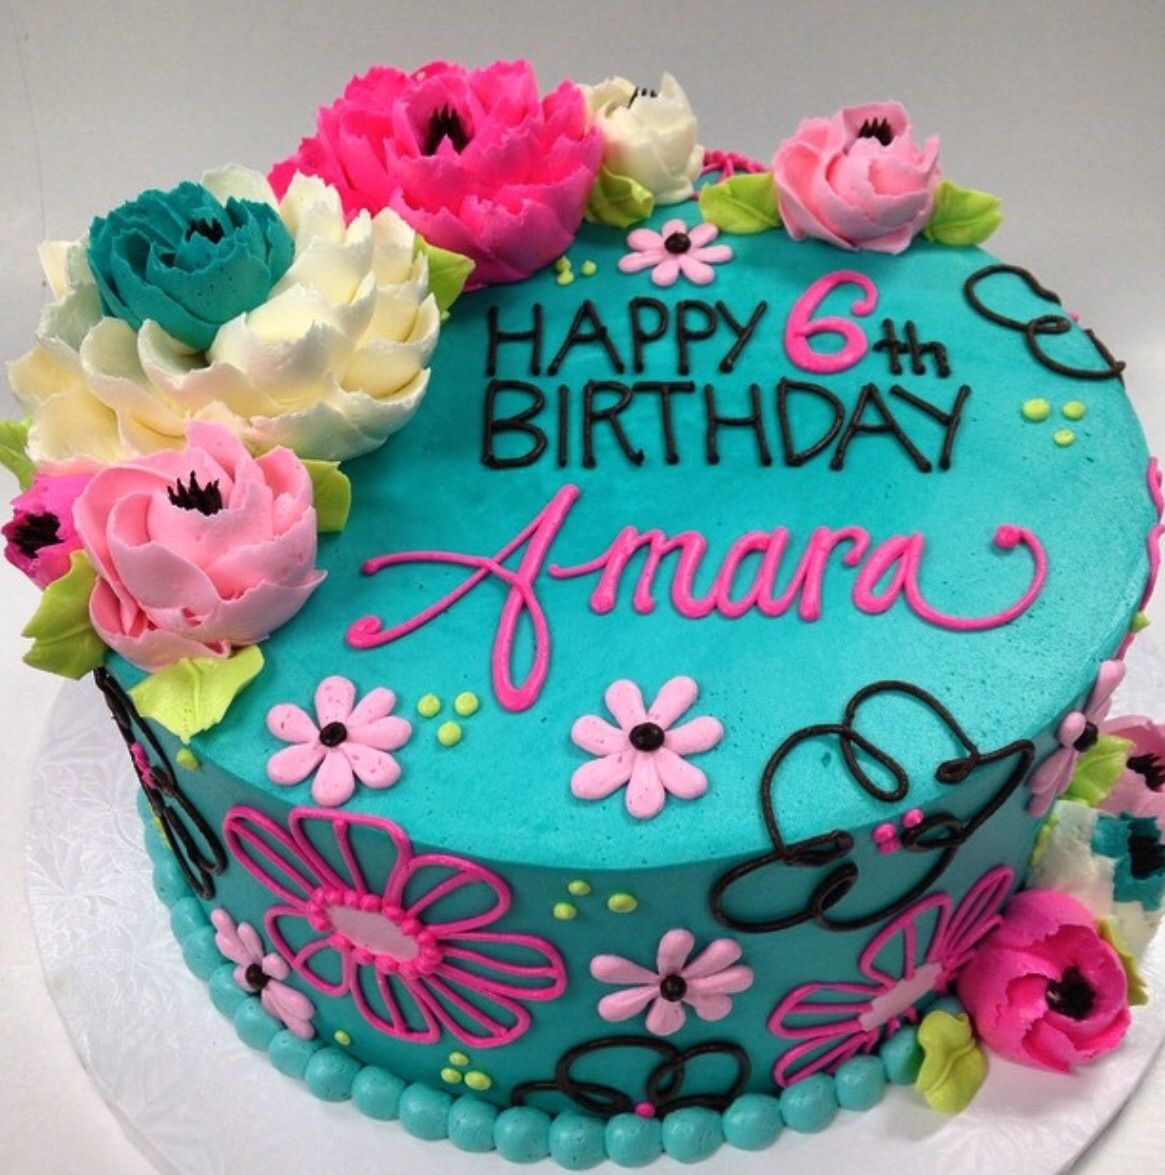 White Flower Cake Shoppe Signature Buttercream Flowers Lovely floral